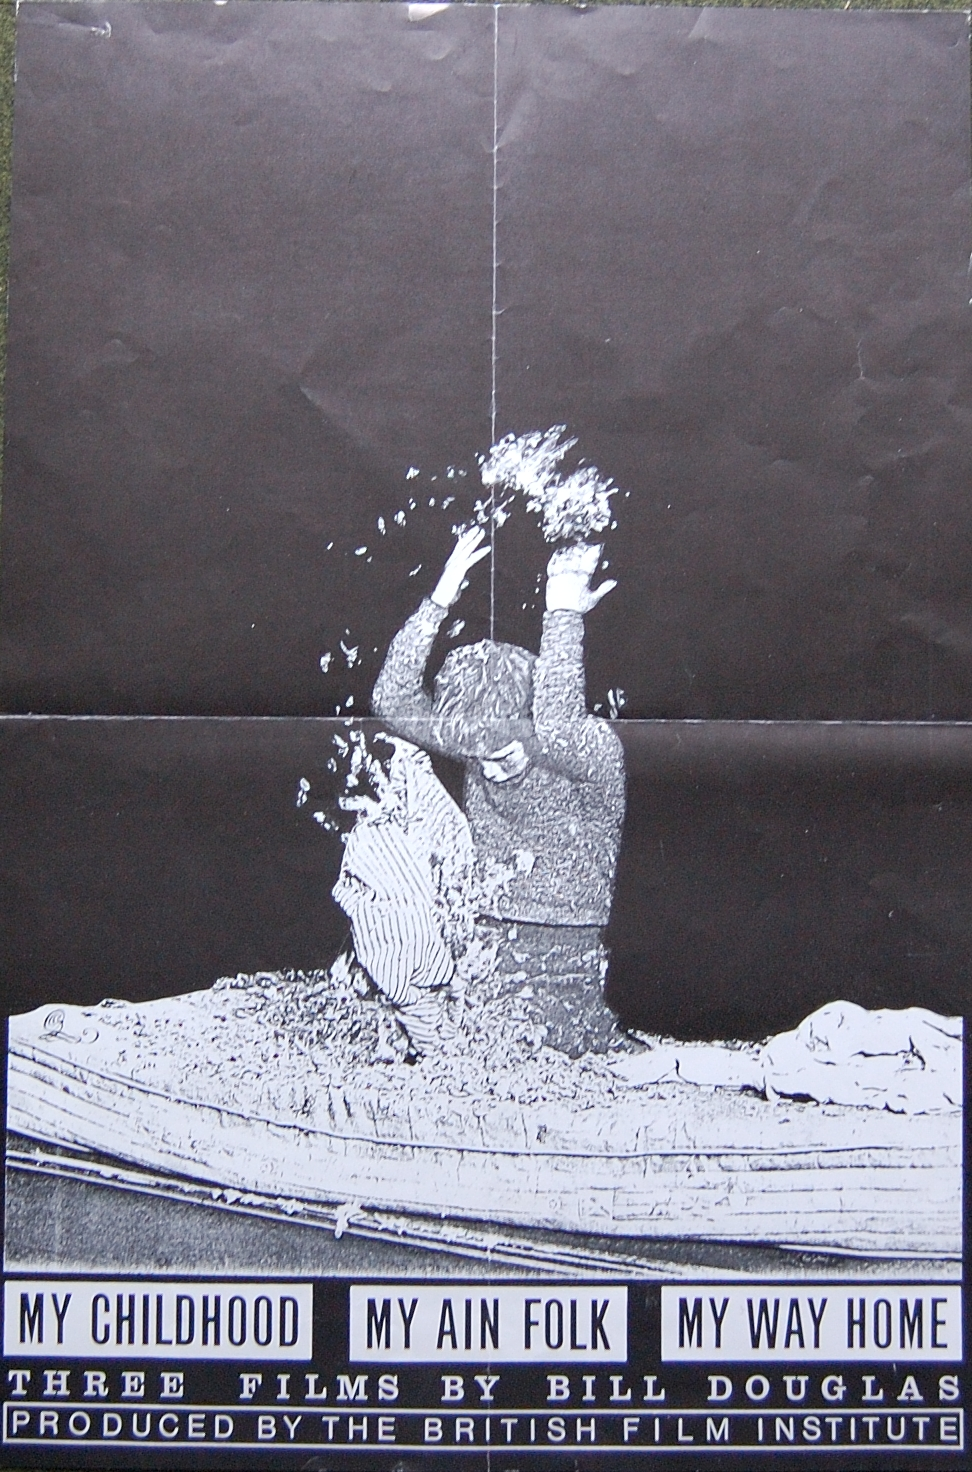 Poster of the Bill Douglas Trilogy by the Quay Brothers